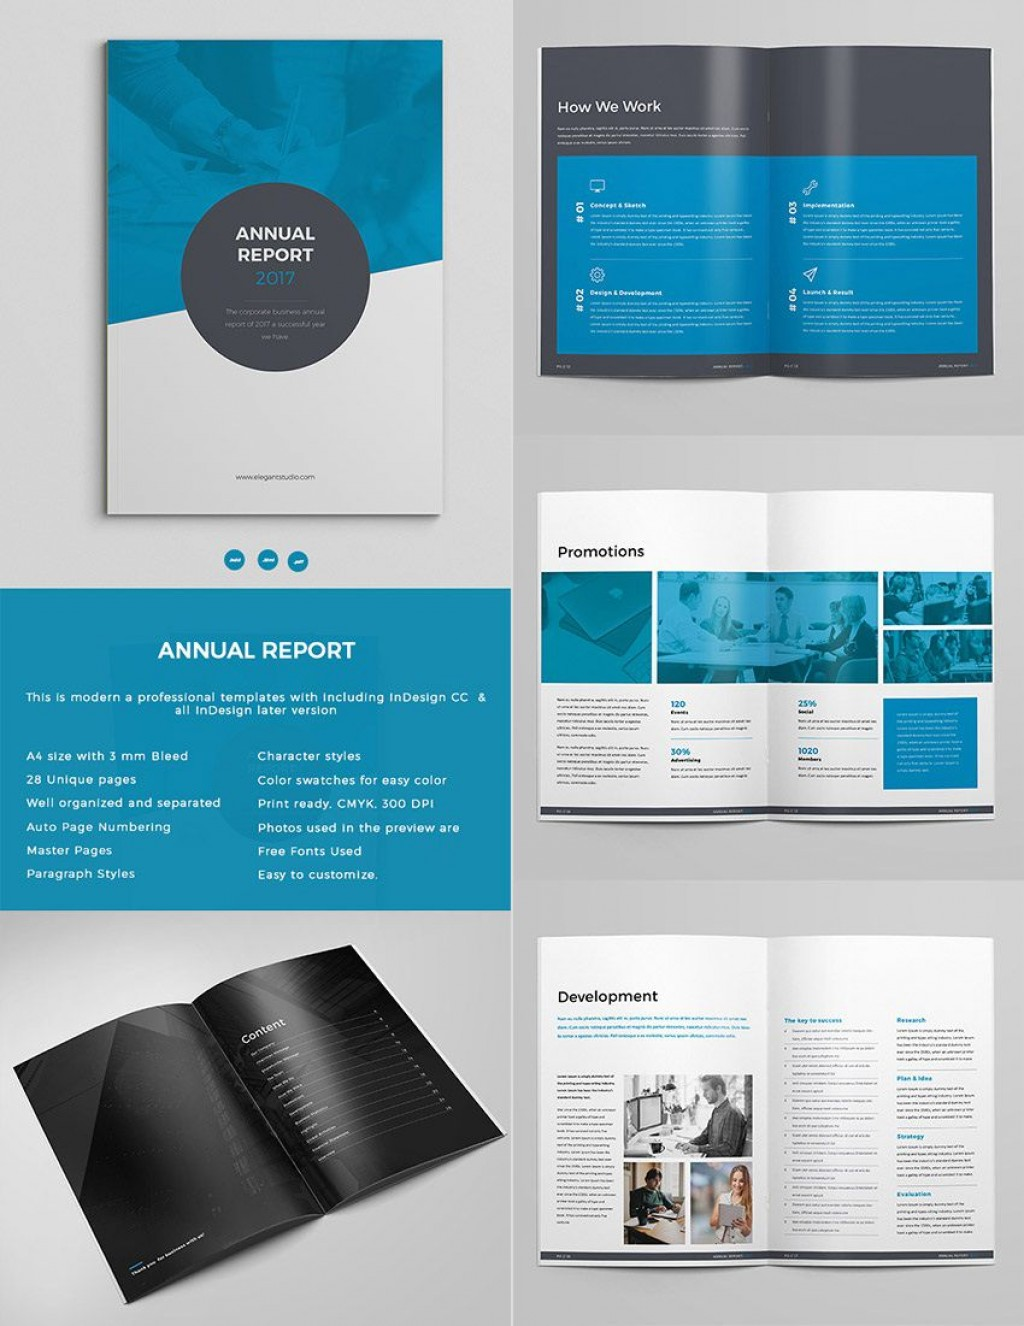 005 Marvelou Free Annual Report Template Indesign Image  Adobe Non ProfitLarge